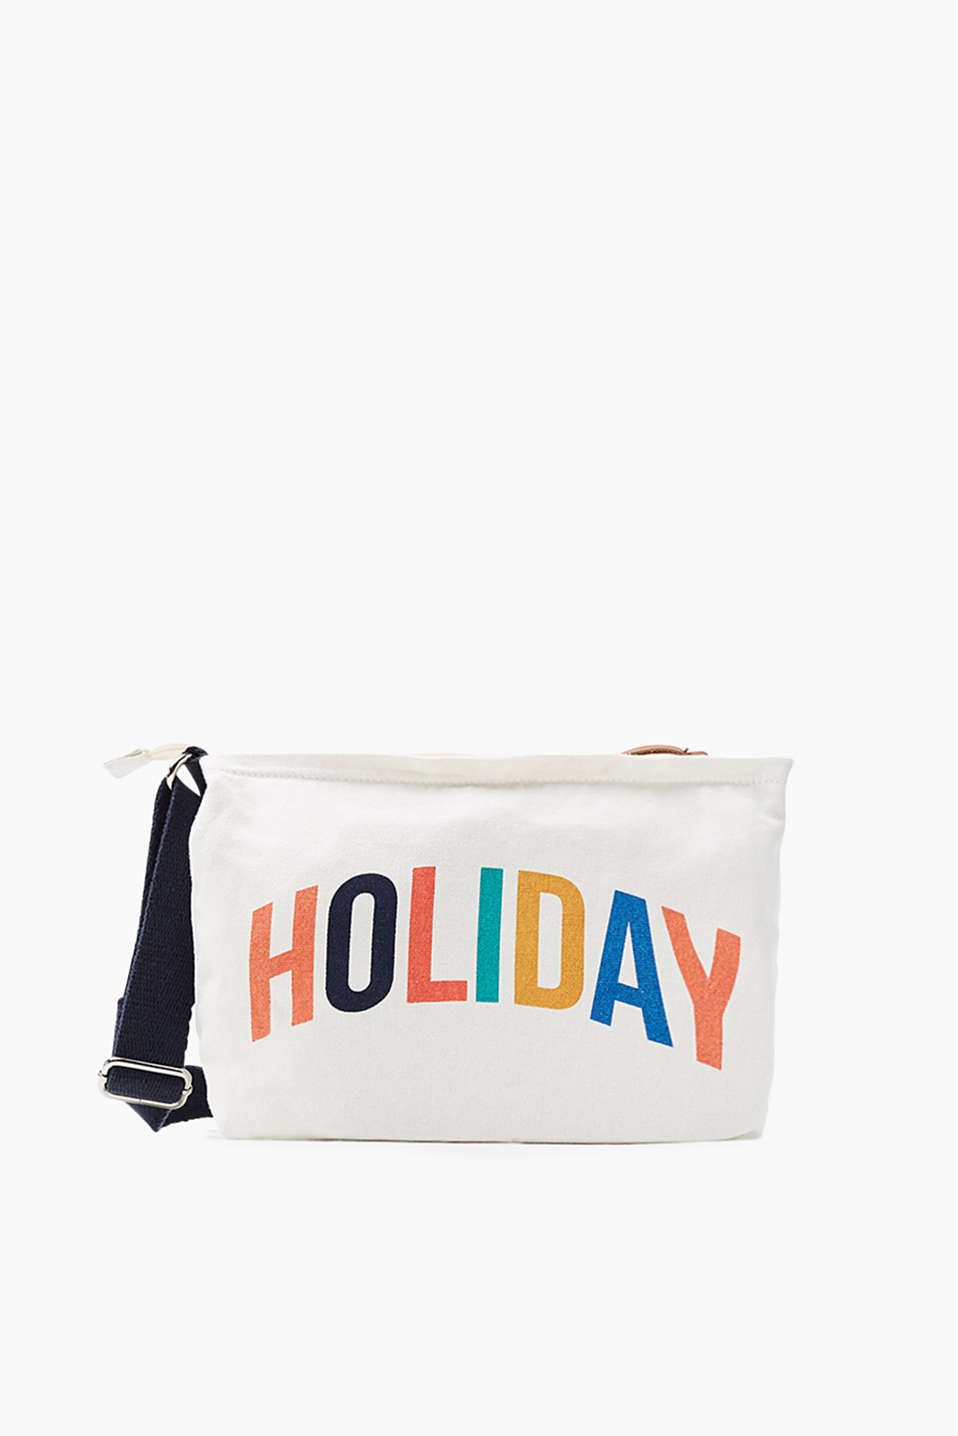 Holiday! Colourful shoulder bag in grainy cotton canvas